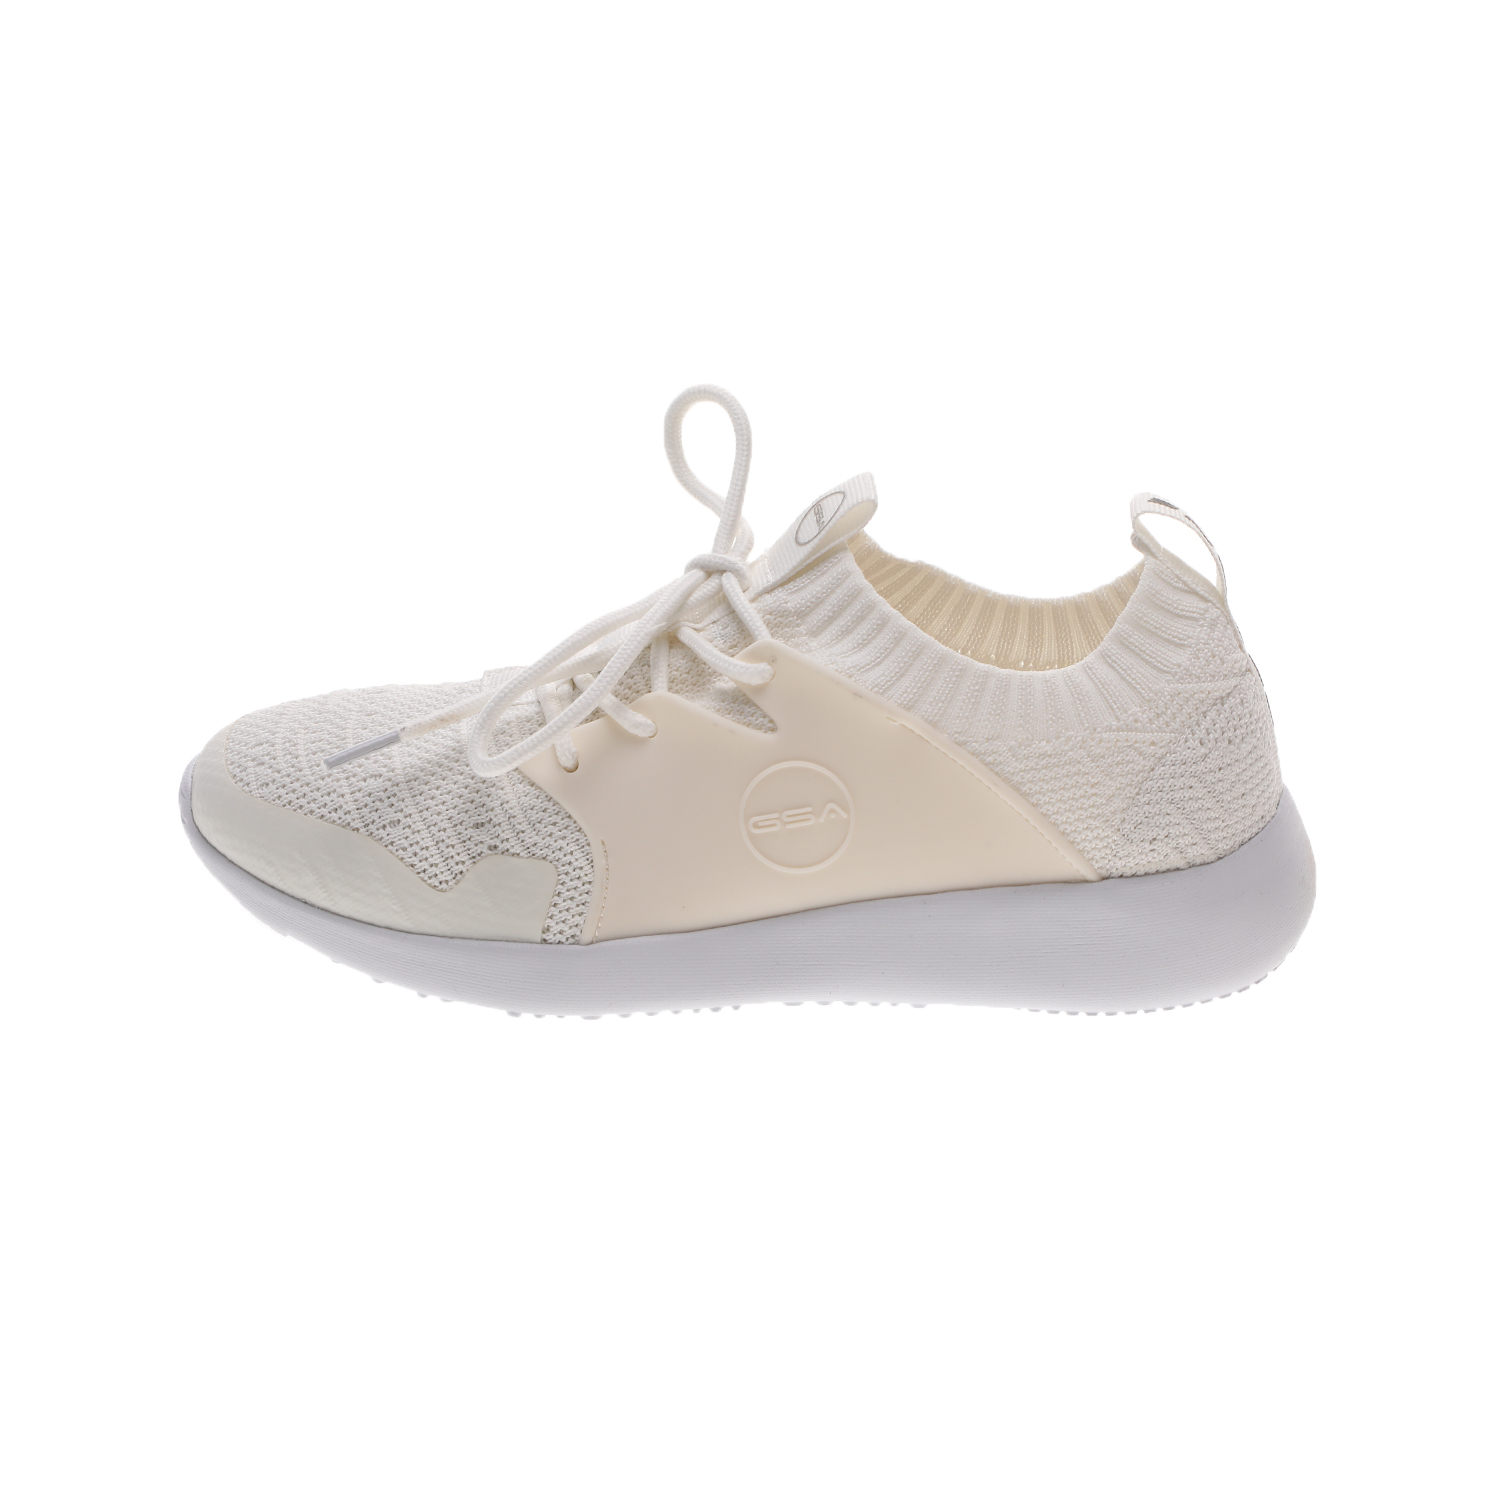 GSA – Unisex sneakers GSA ONE LOW λευκά